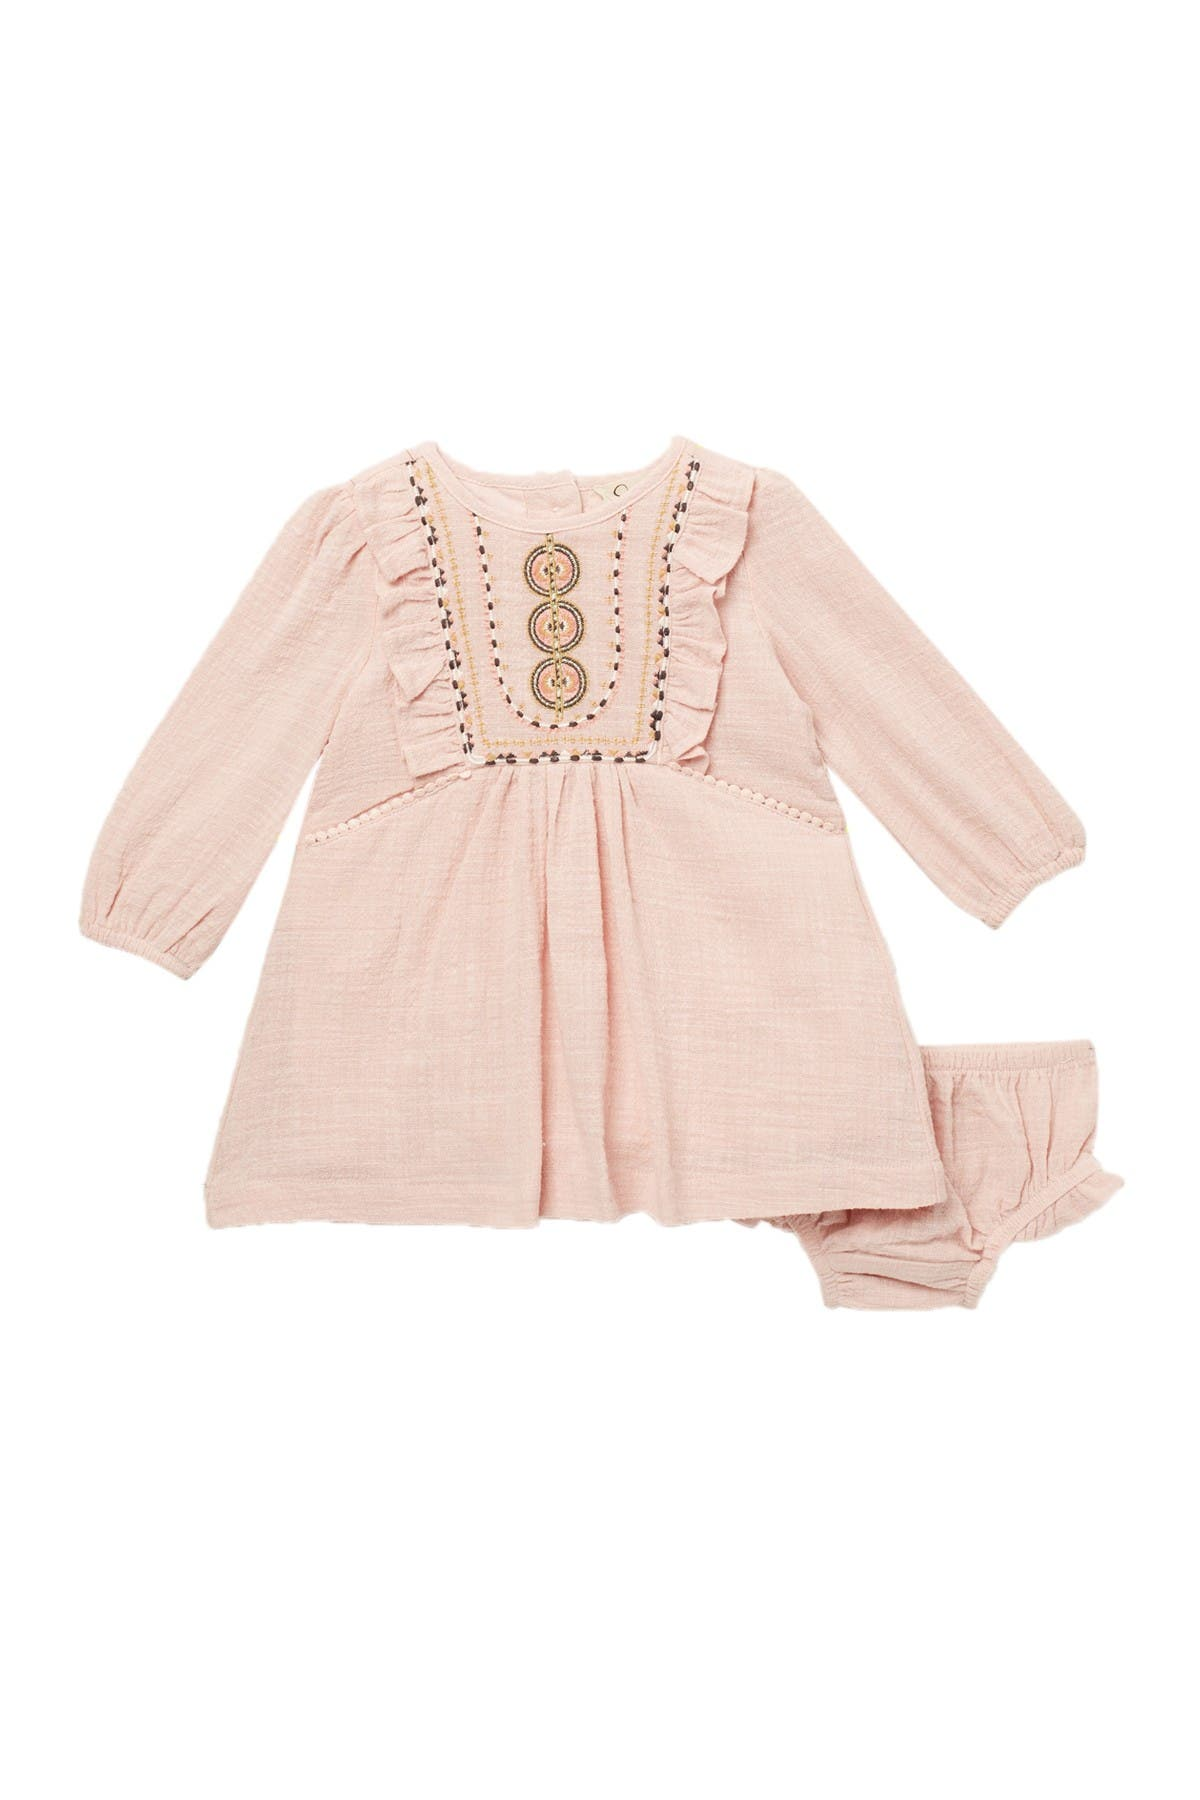 Image of Jessica Simpson Embroidered Gauze Dress & Bloomers